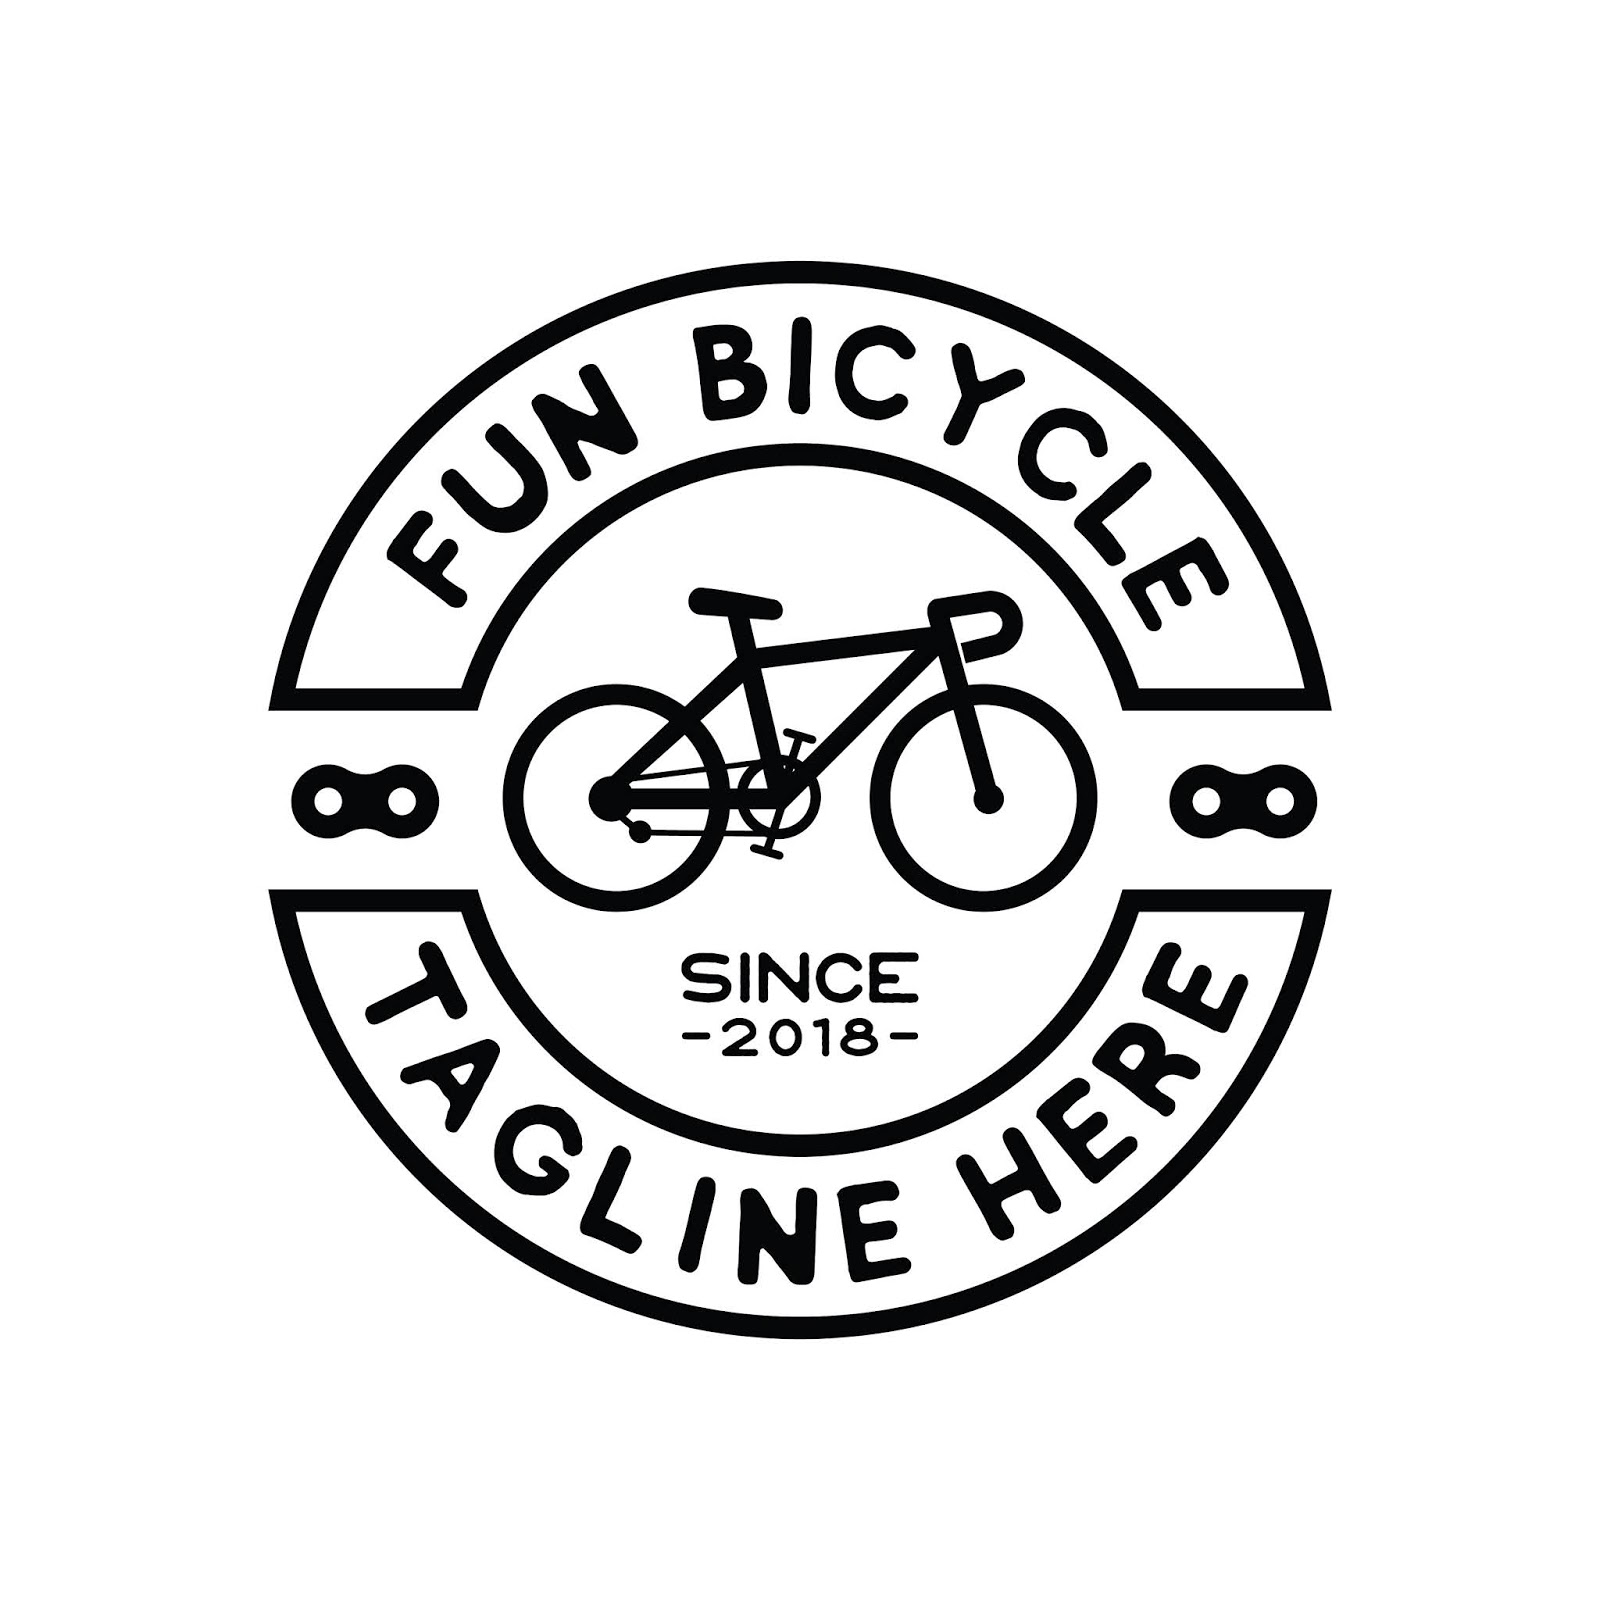 Hipster Bicycle Logo Design Inspiration Vector	 Free Download Vector CDR, AI, EPS and PNG Formats